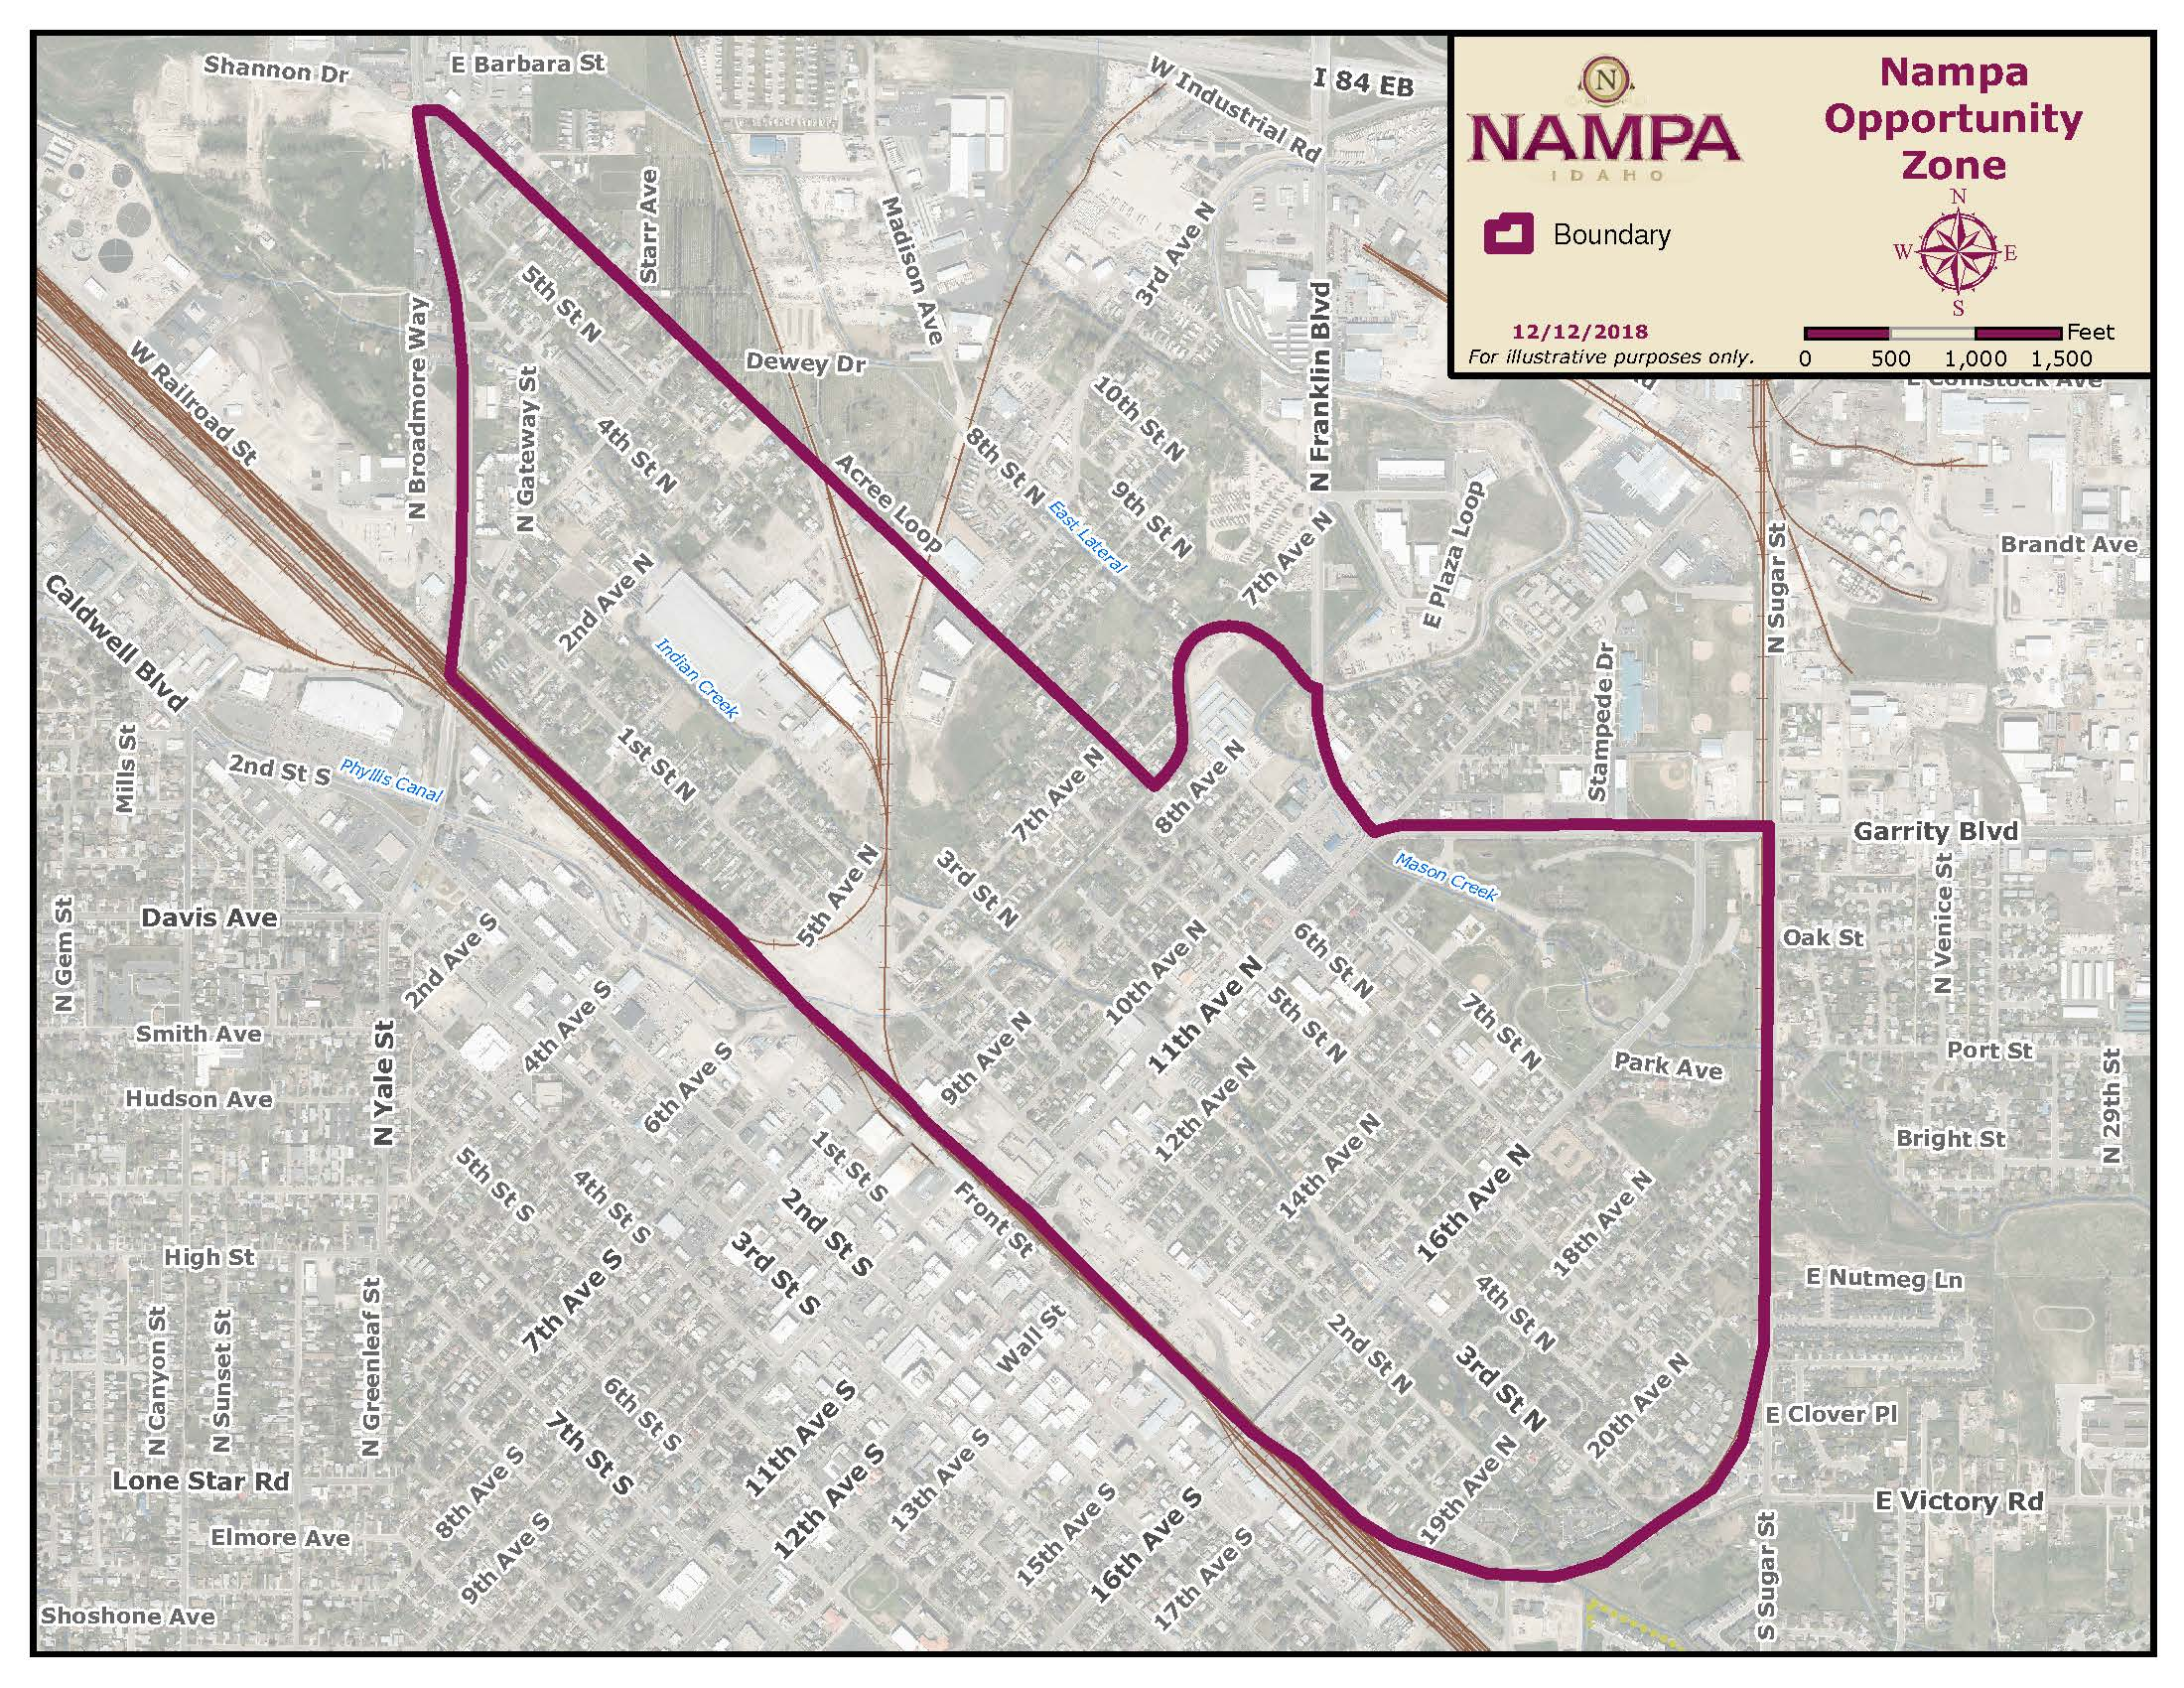 Nampa_Opportunity_Zone_map_horizontal